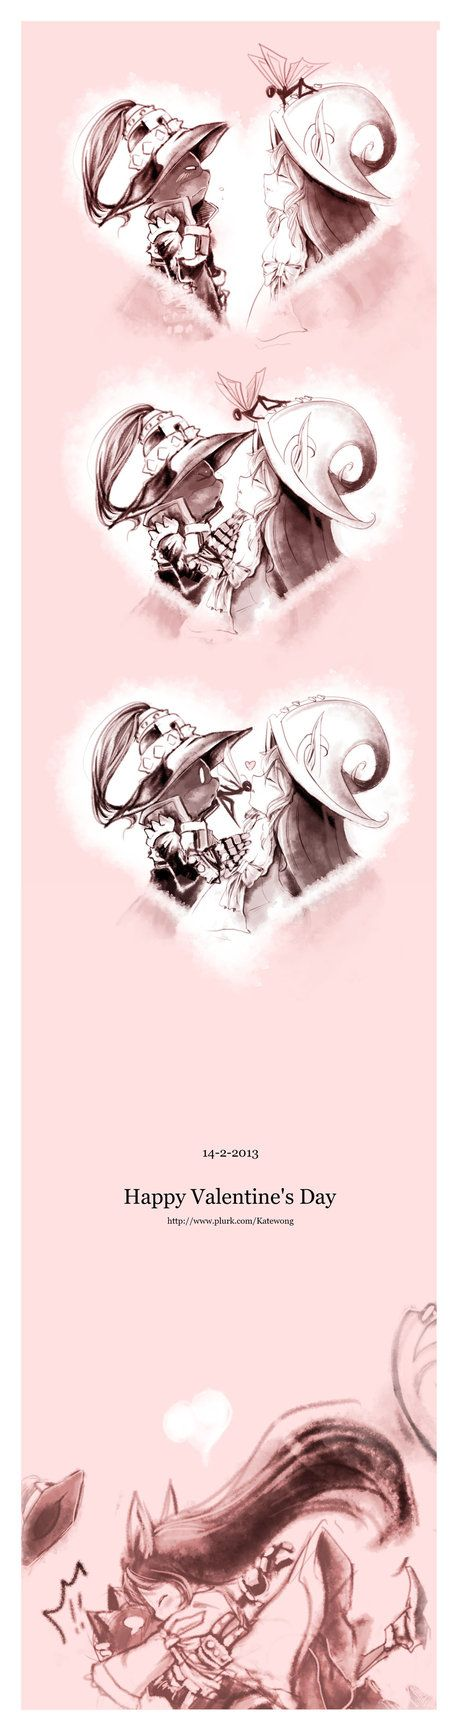 Valentines Day with Lulu and Veigar. I ship it. :D